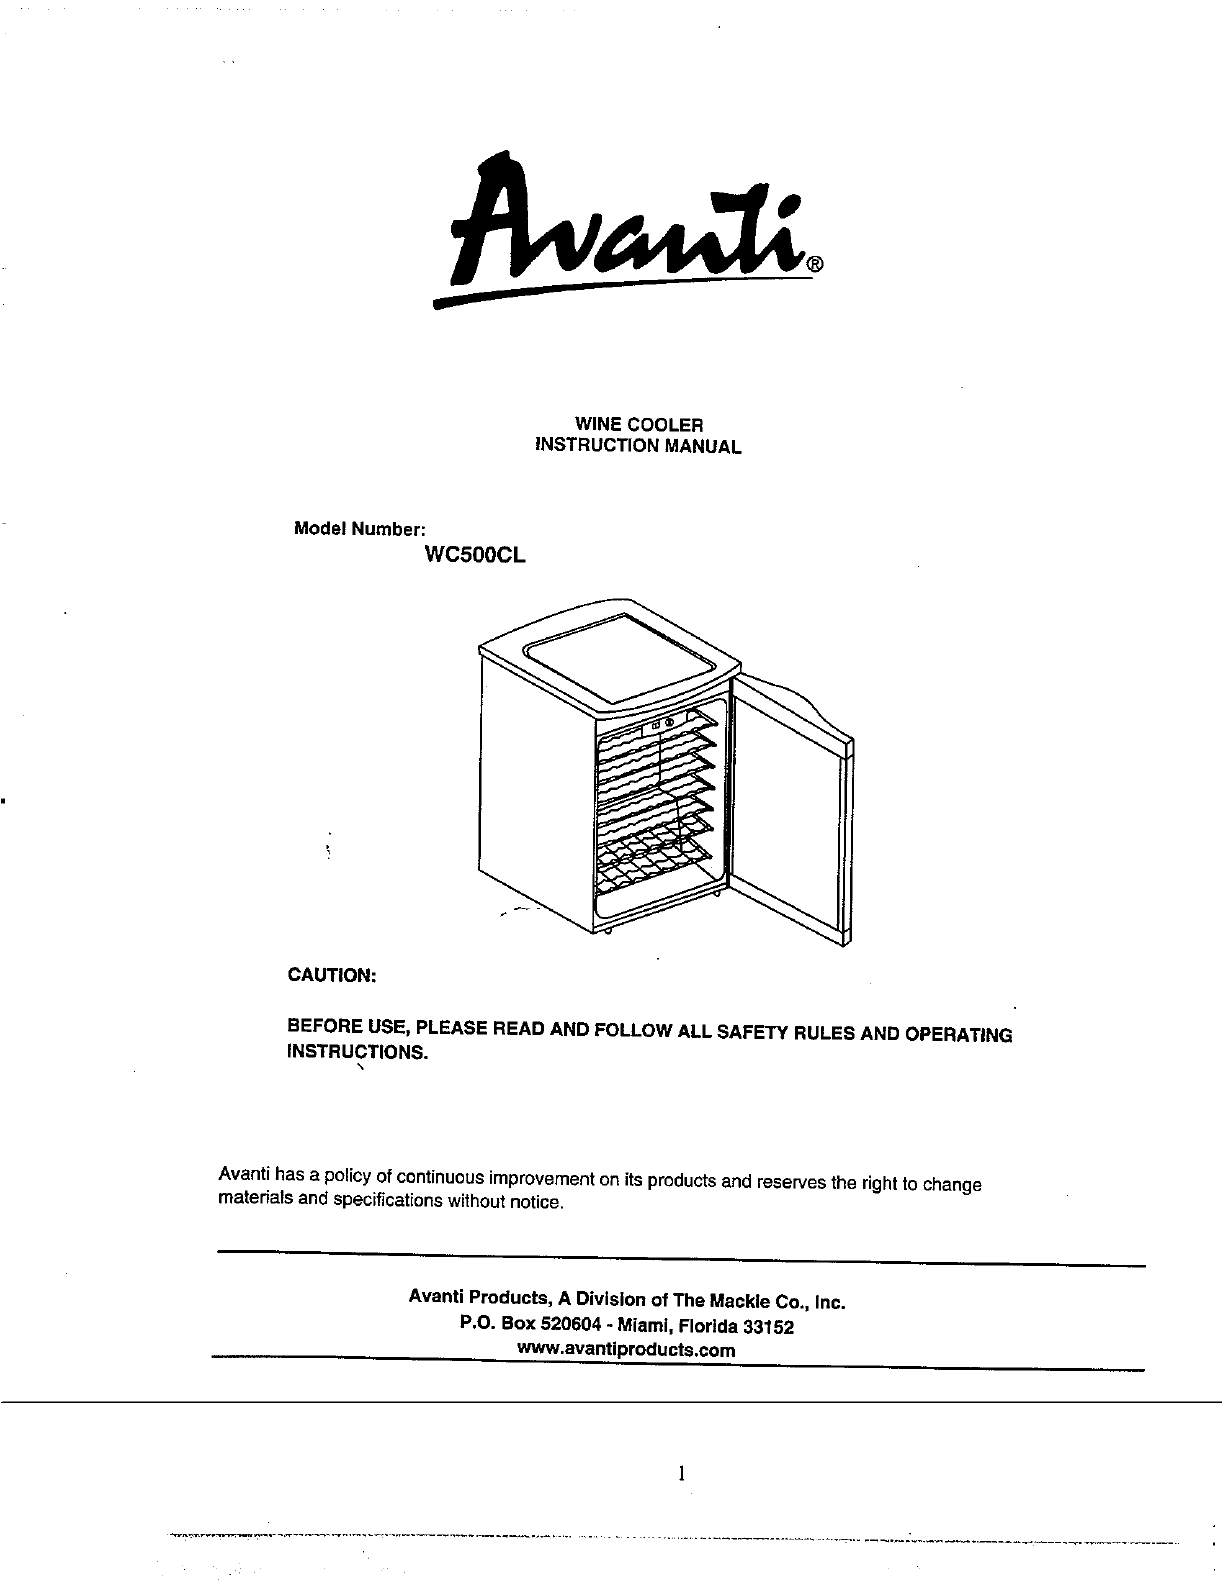 avanti refrigerator wc500cl user guide manualsonline com rh kitchen manualsonline com avanti compact refrigerator manual avanti refrigerator instruction manual